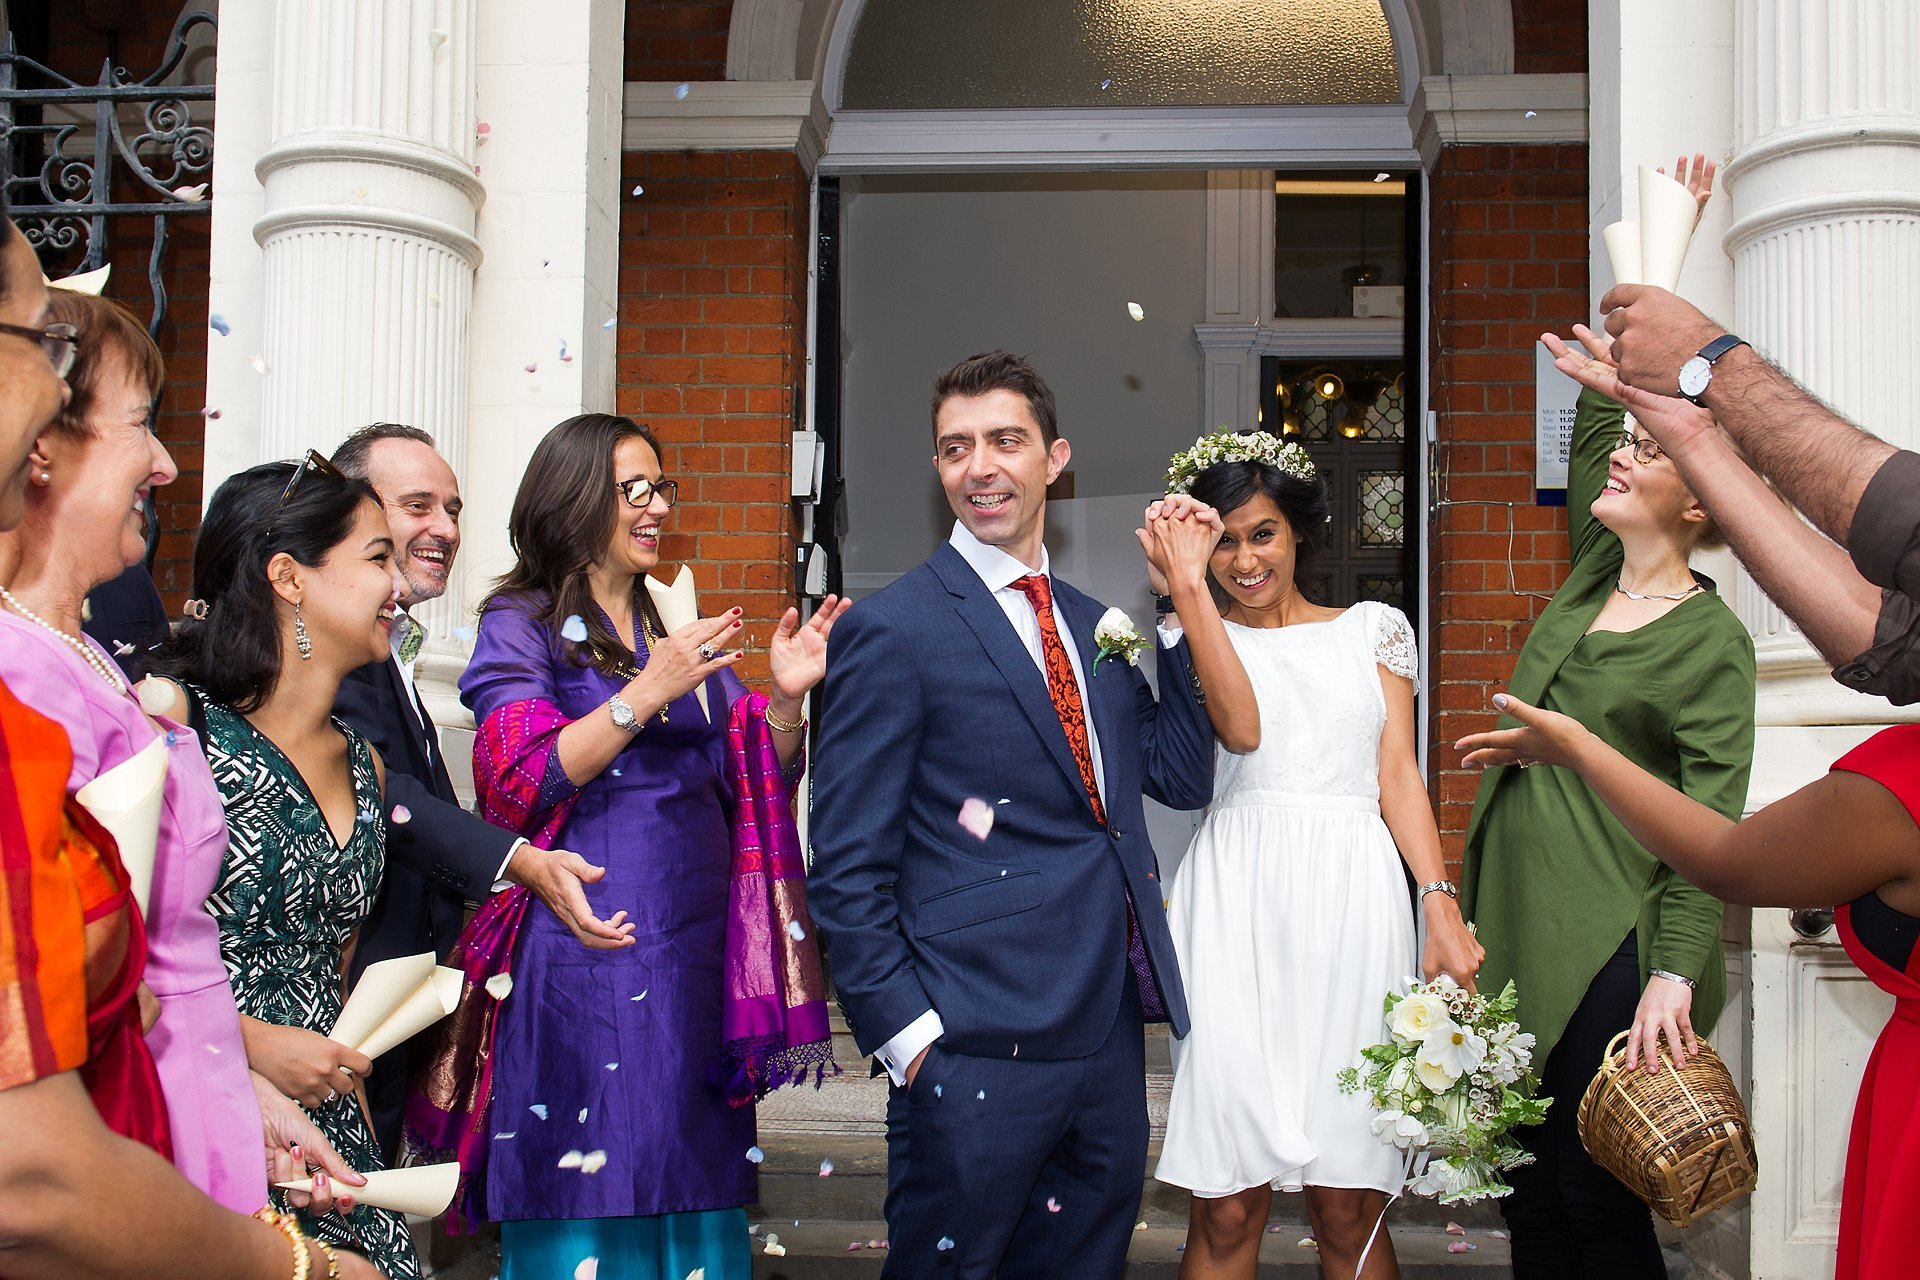 westminster registry office wedding photography and confetti outside mayfair library